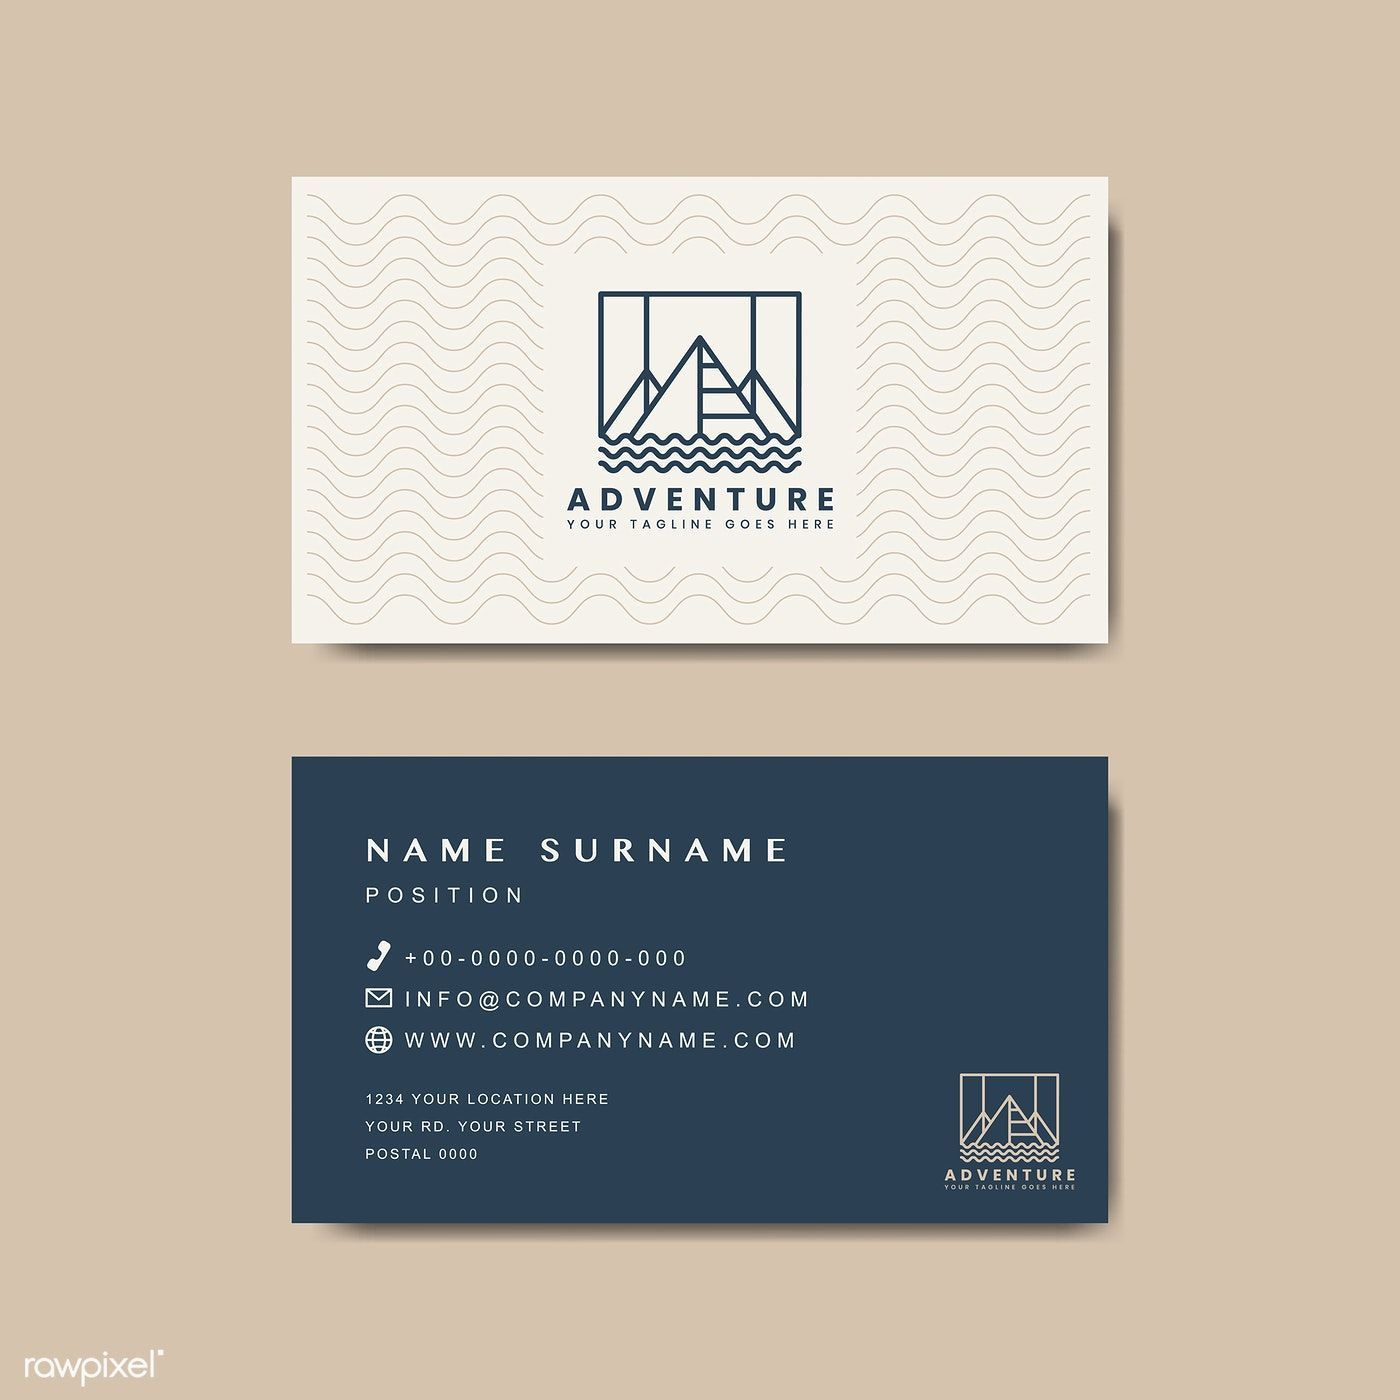 005 Surprising Minimalist Busines Card Template Free Download High Definition Full